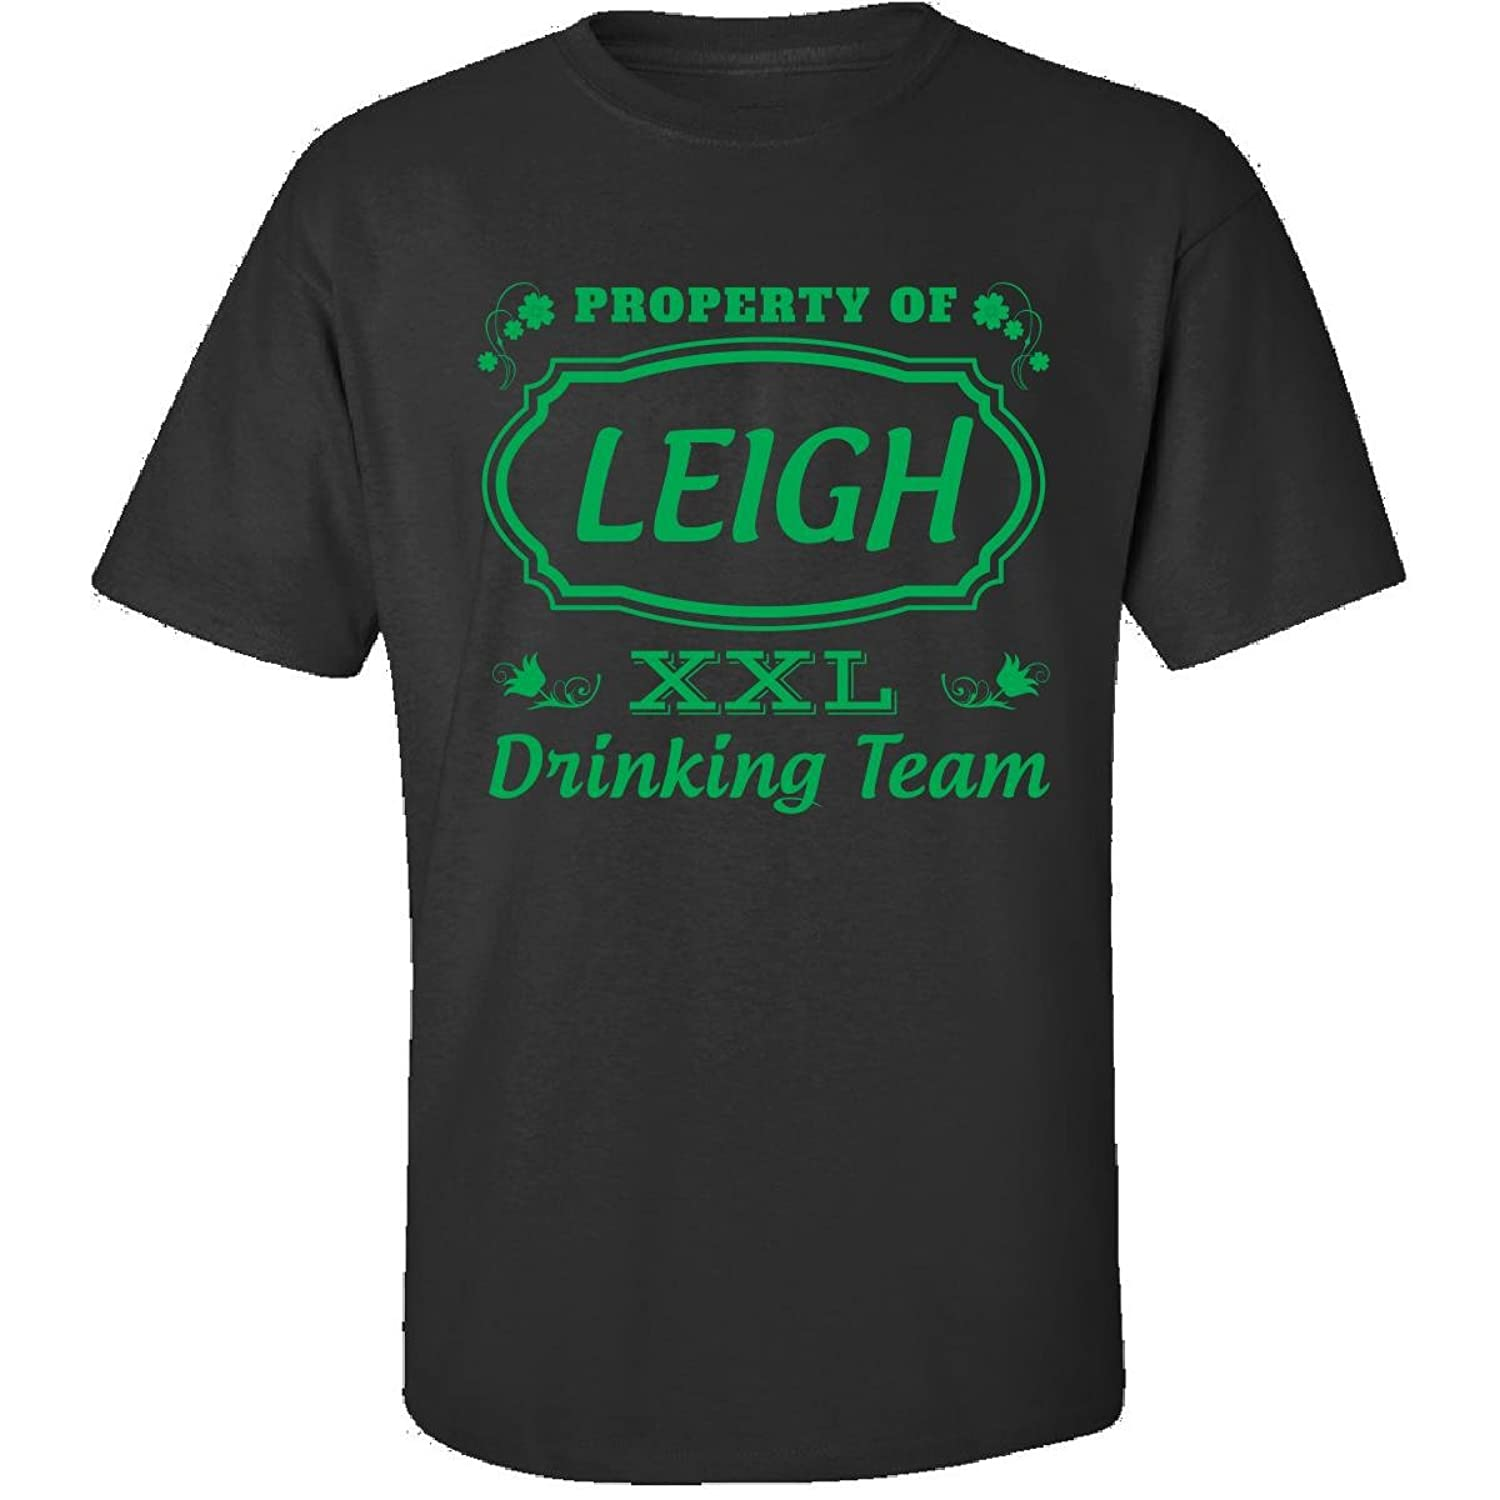 Property Of Leigh St Patrick Day Beer Drinking Team - Adult Shirt